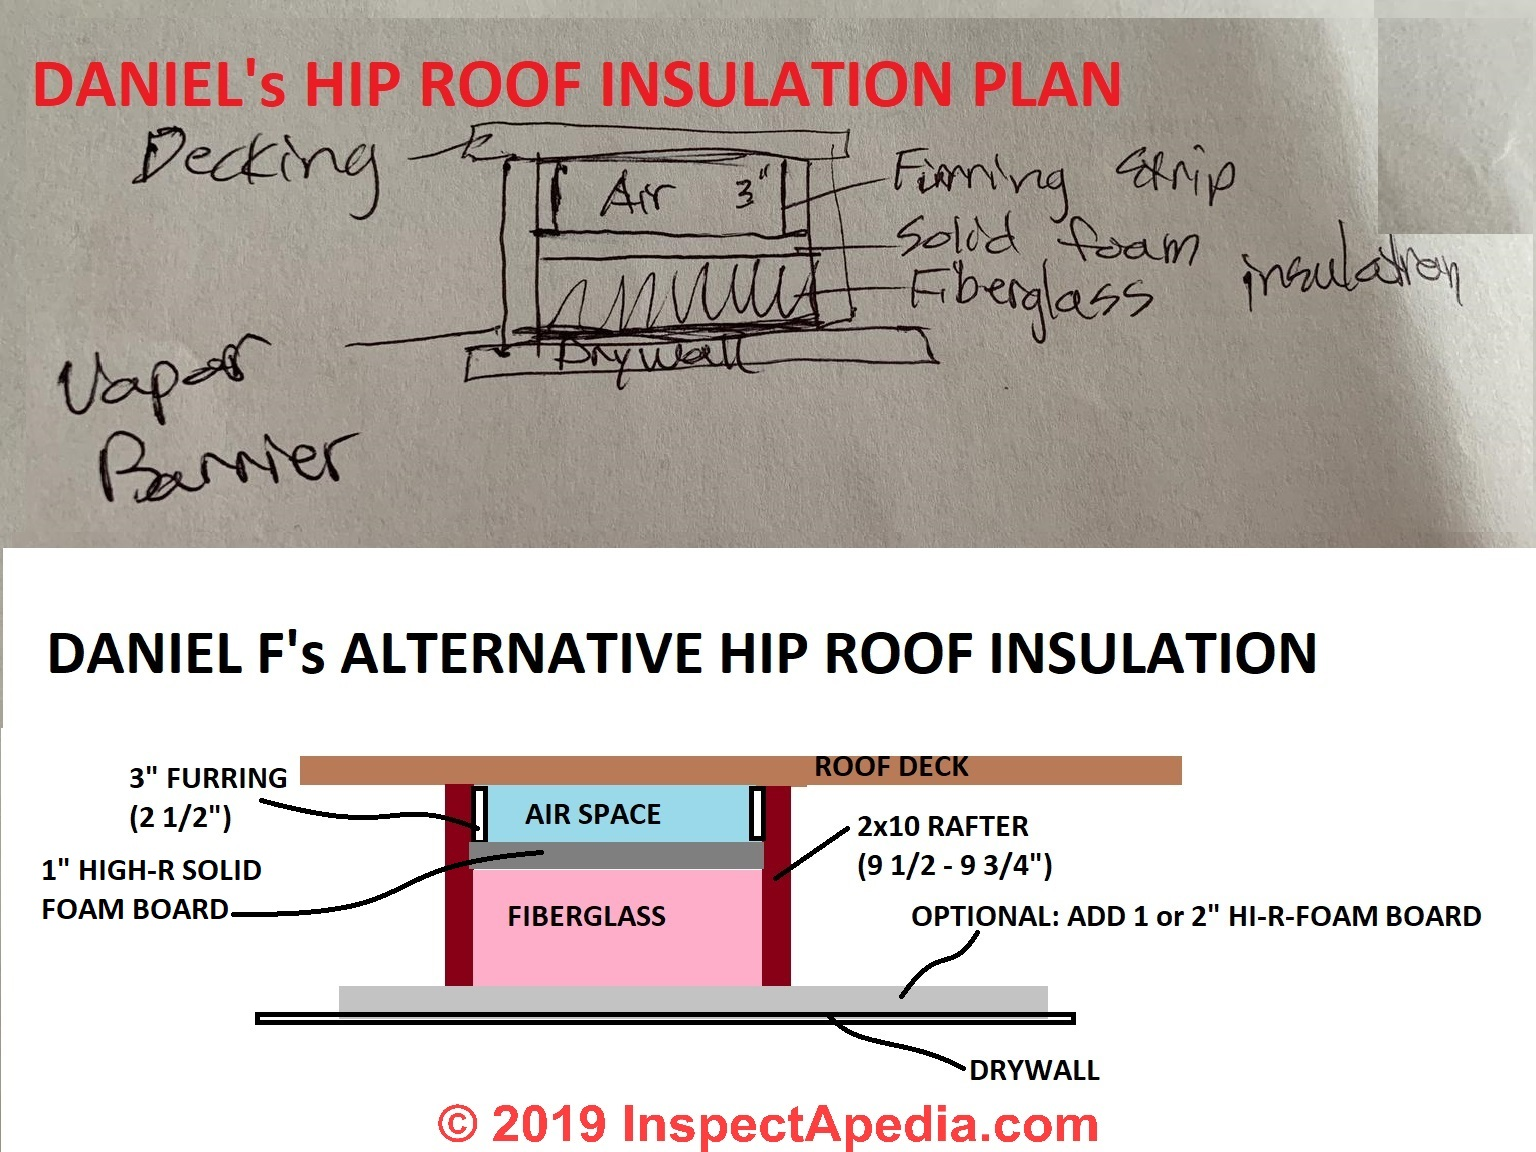 Solutions For Hard To Vent Roofs Ceilings Approaches To Dealing With Building Roofs Or Ceilings Where Ventilation Is Difficult Not Feasible Not Wanted